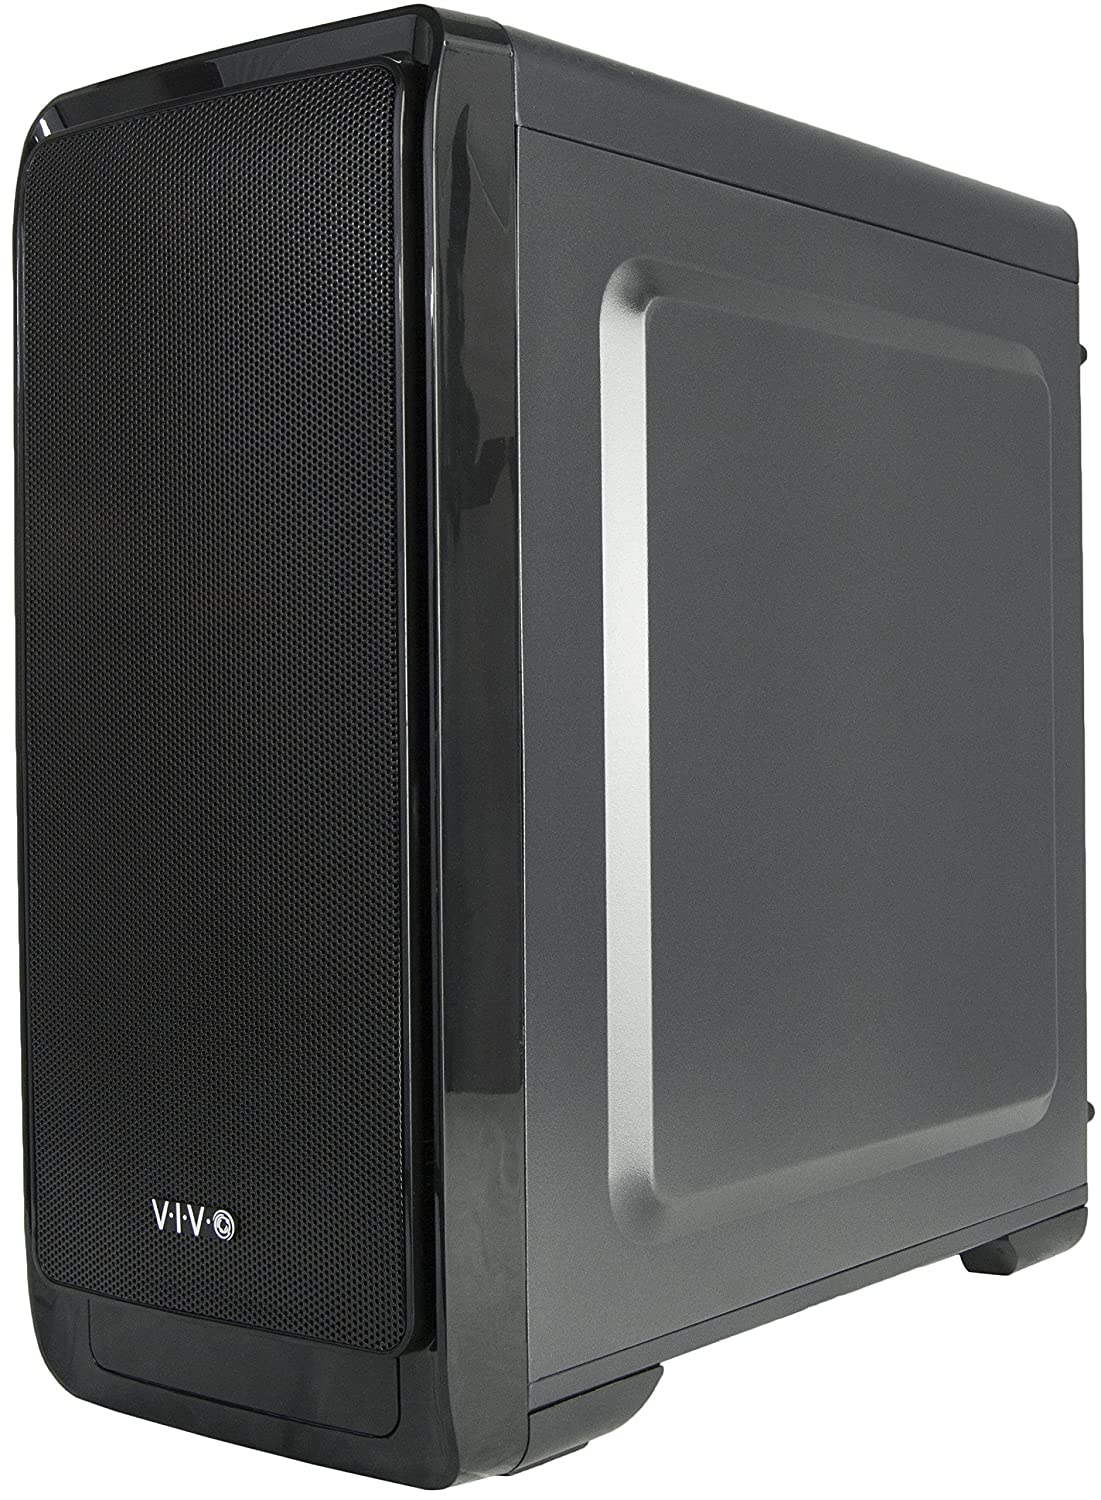 5 Fan Mounts CASE-V06 USB 3.0 Port VIVO Micro-ATXSMART Mid Tower Computer Gaming PC Case Black